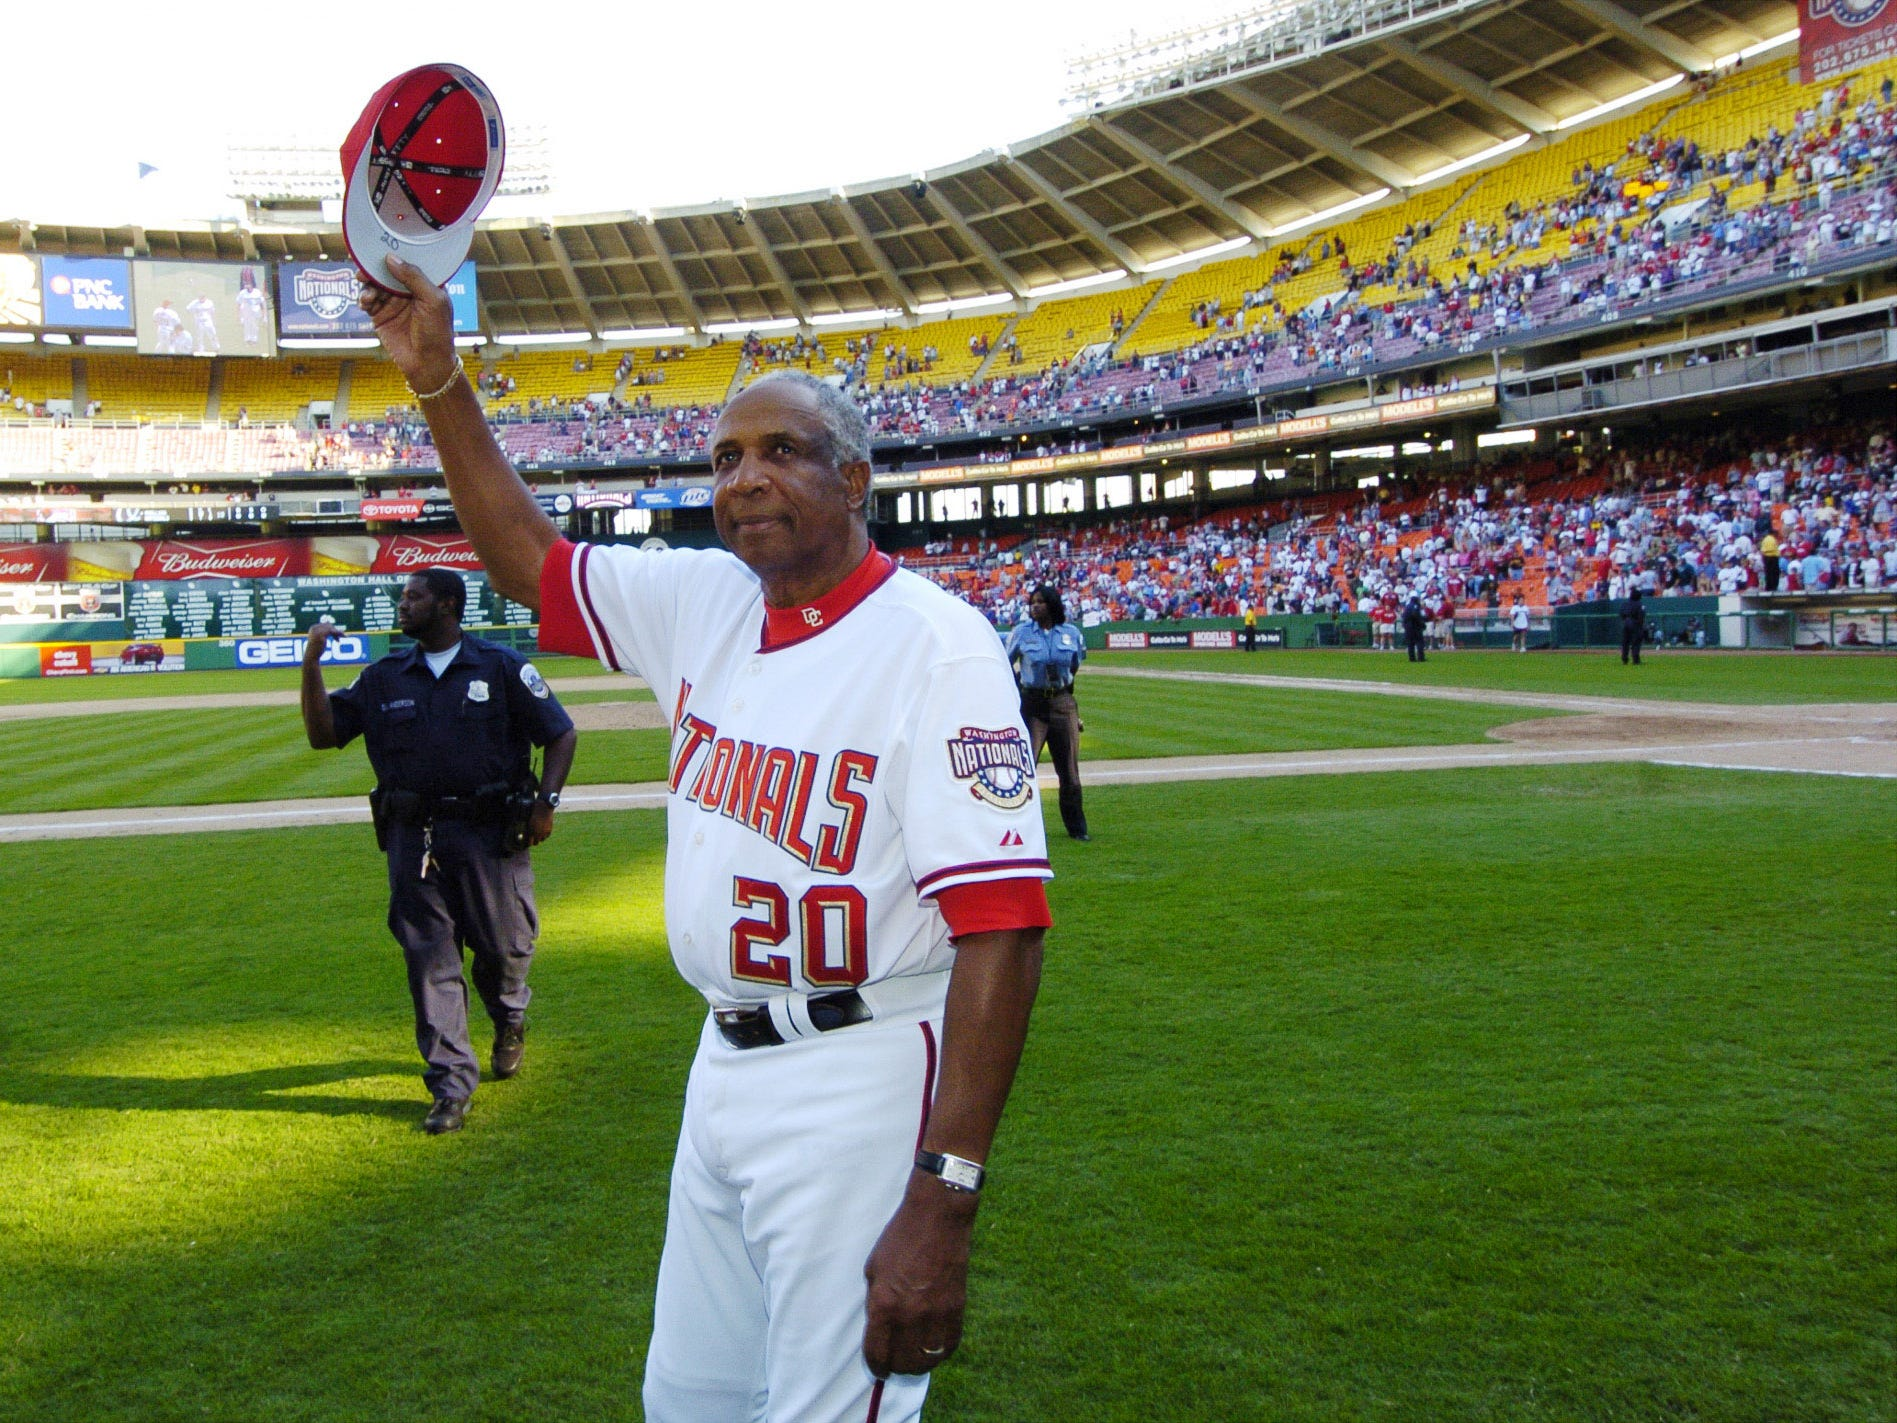 Frank Robinson managed the Washington Nationals/Montreal Expos from 2002-2006.